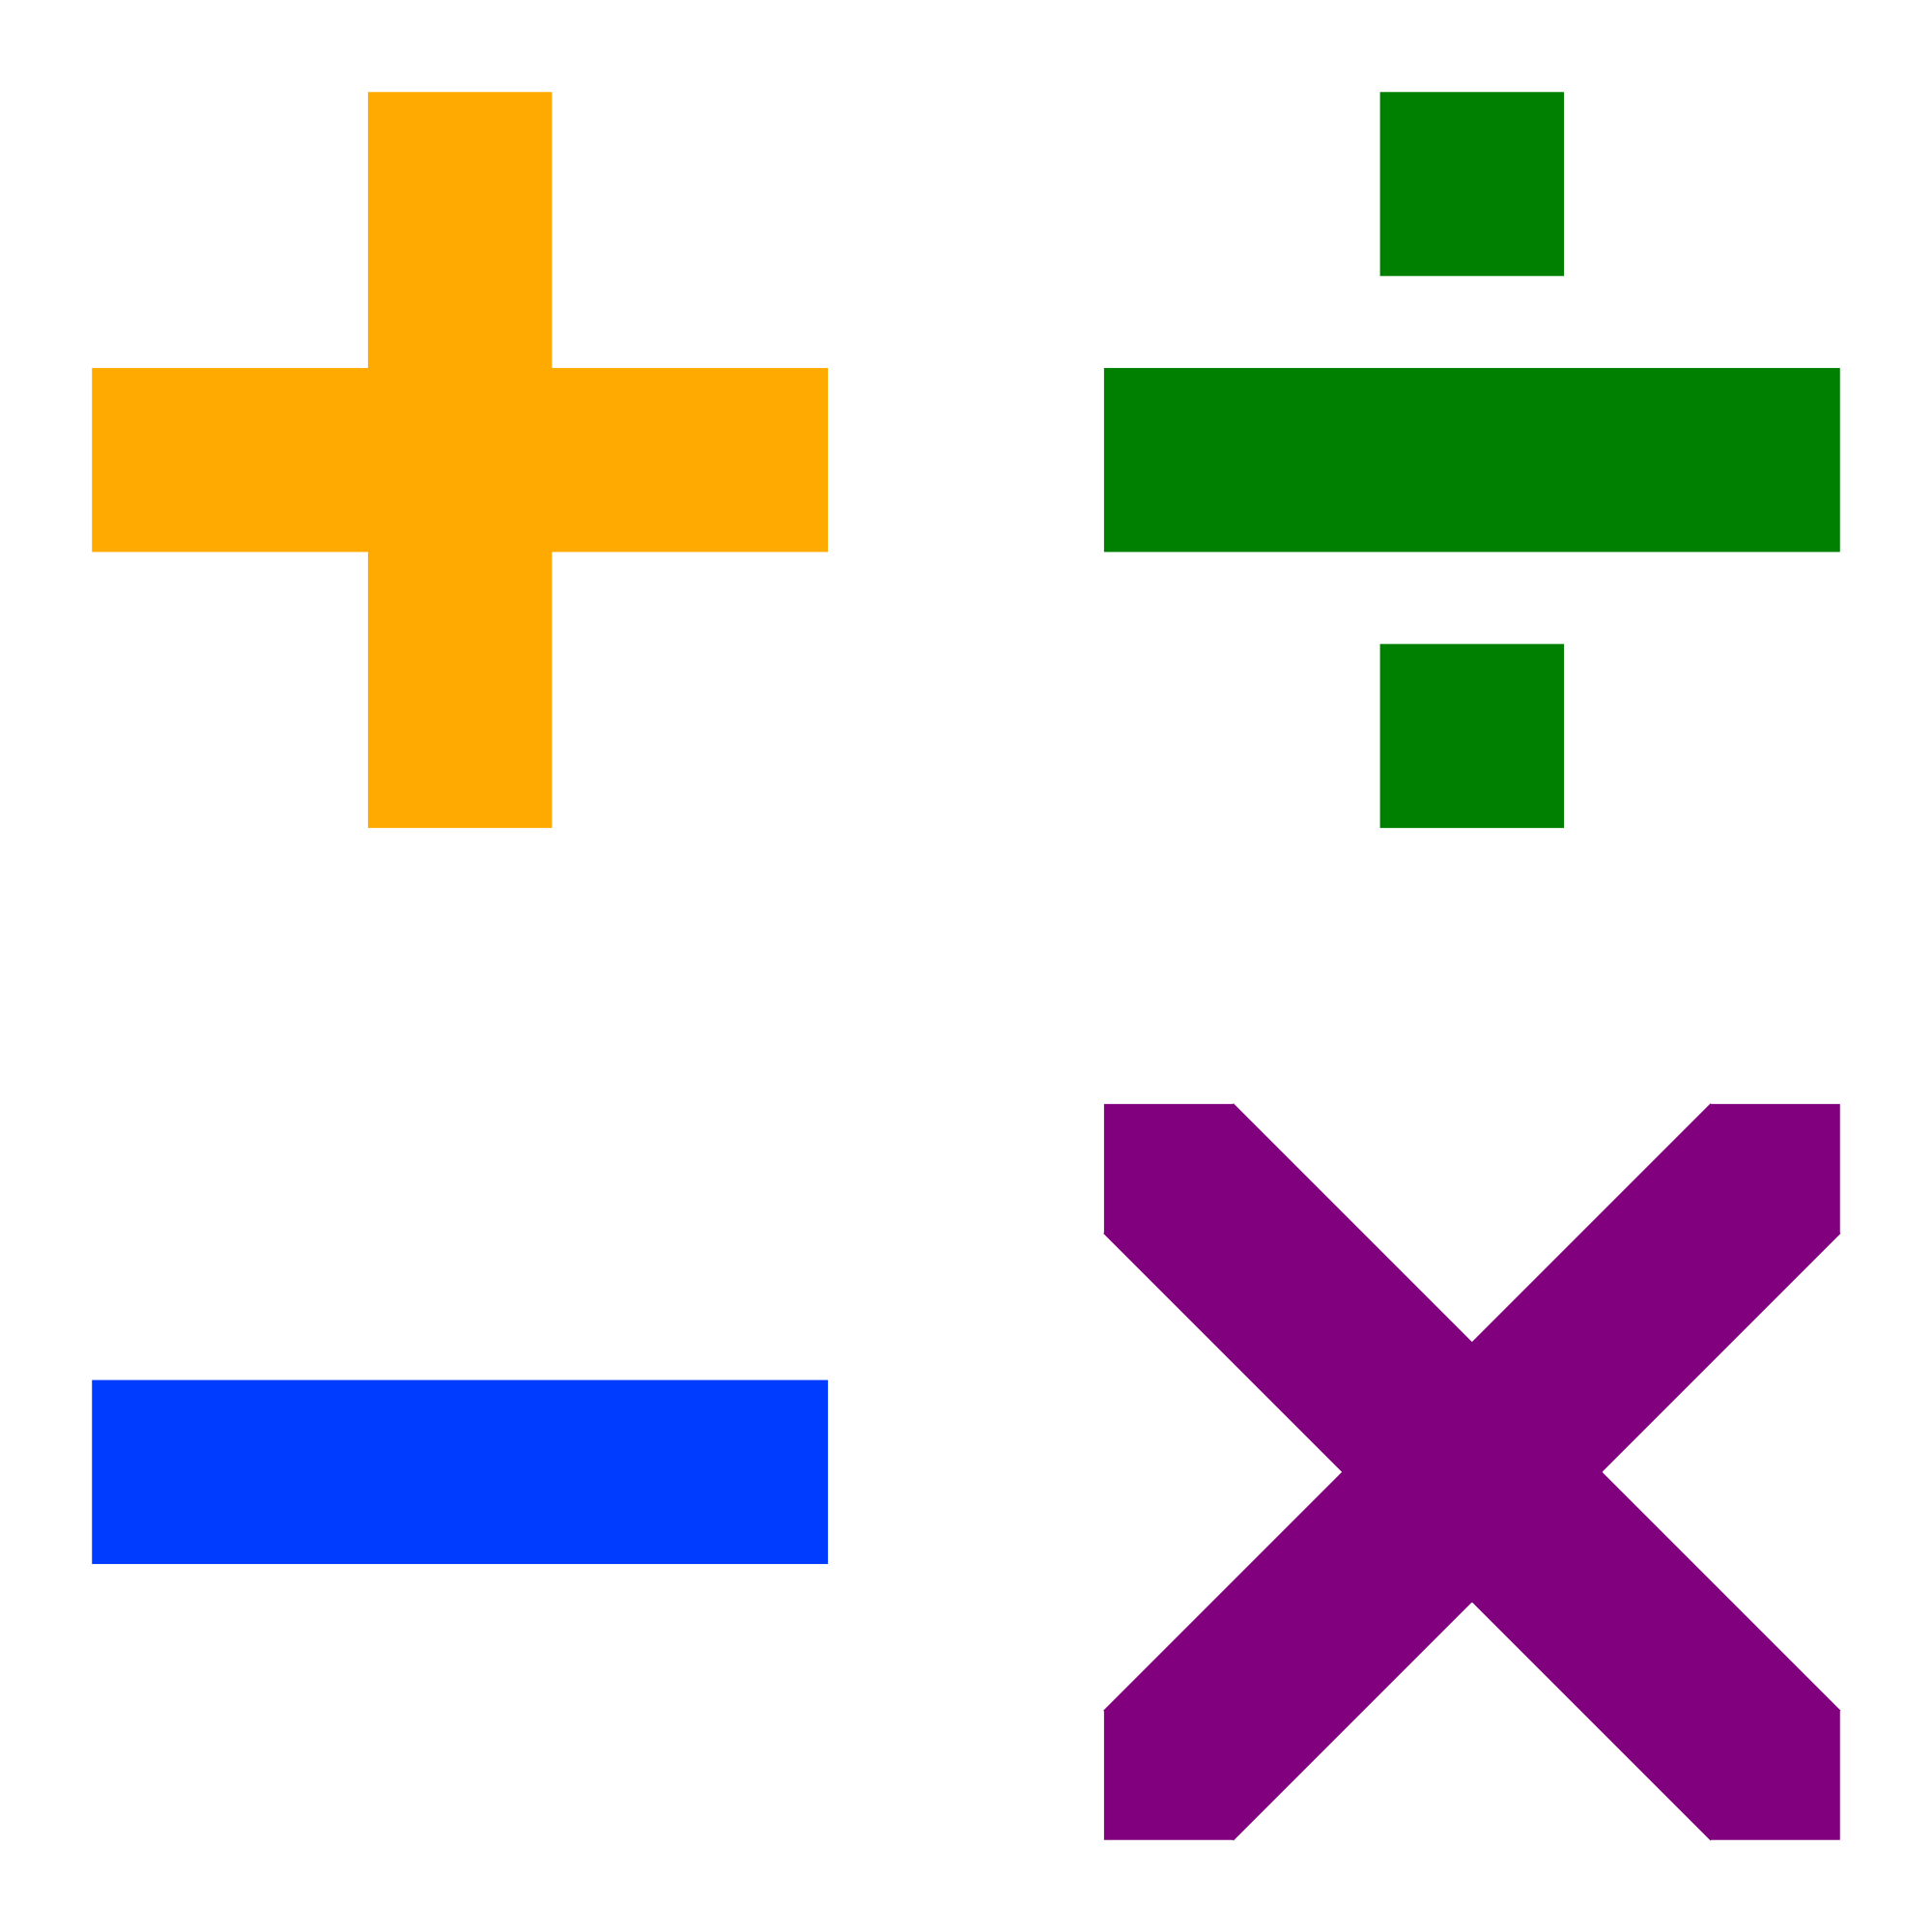 Elementary arithmetic wikipedia the. Fraction clipart math symbol